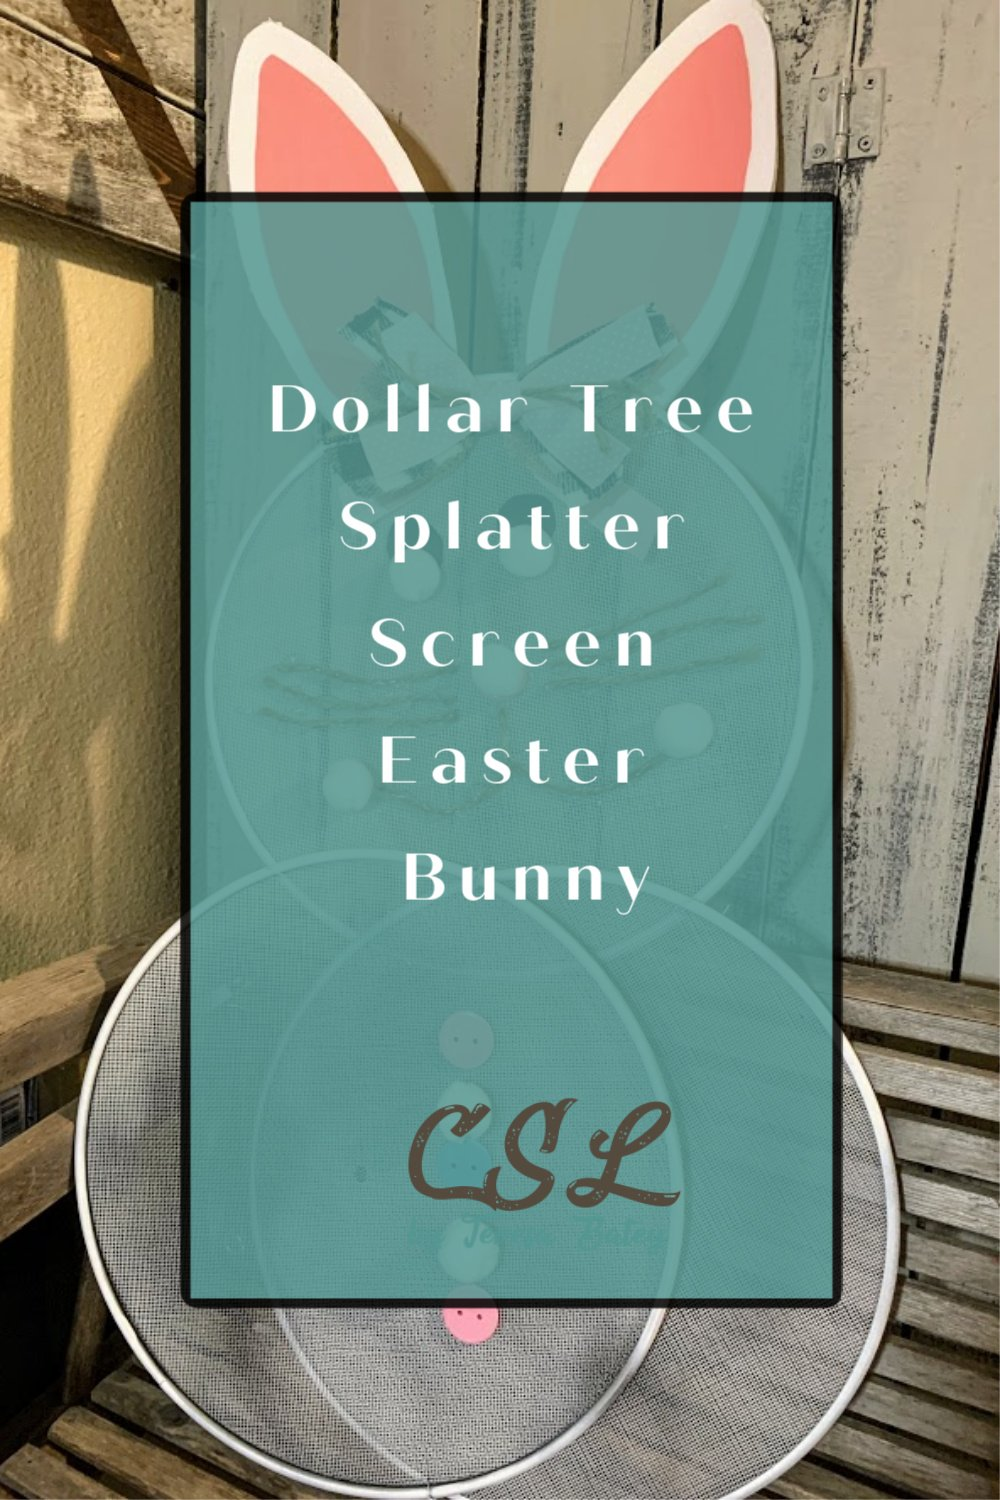 Dollar Tree Splatter Screen Easter Bunny